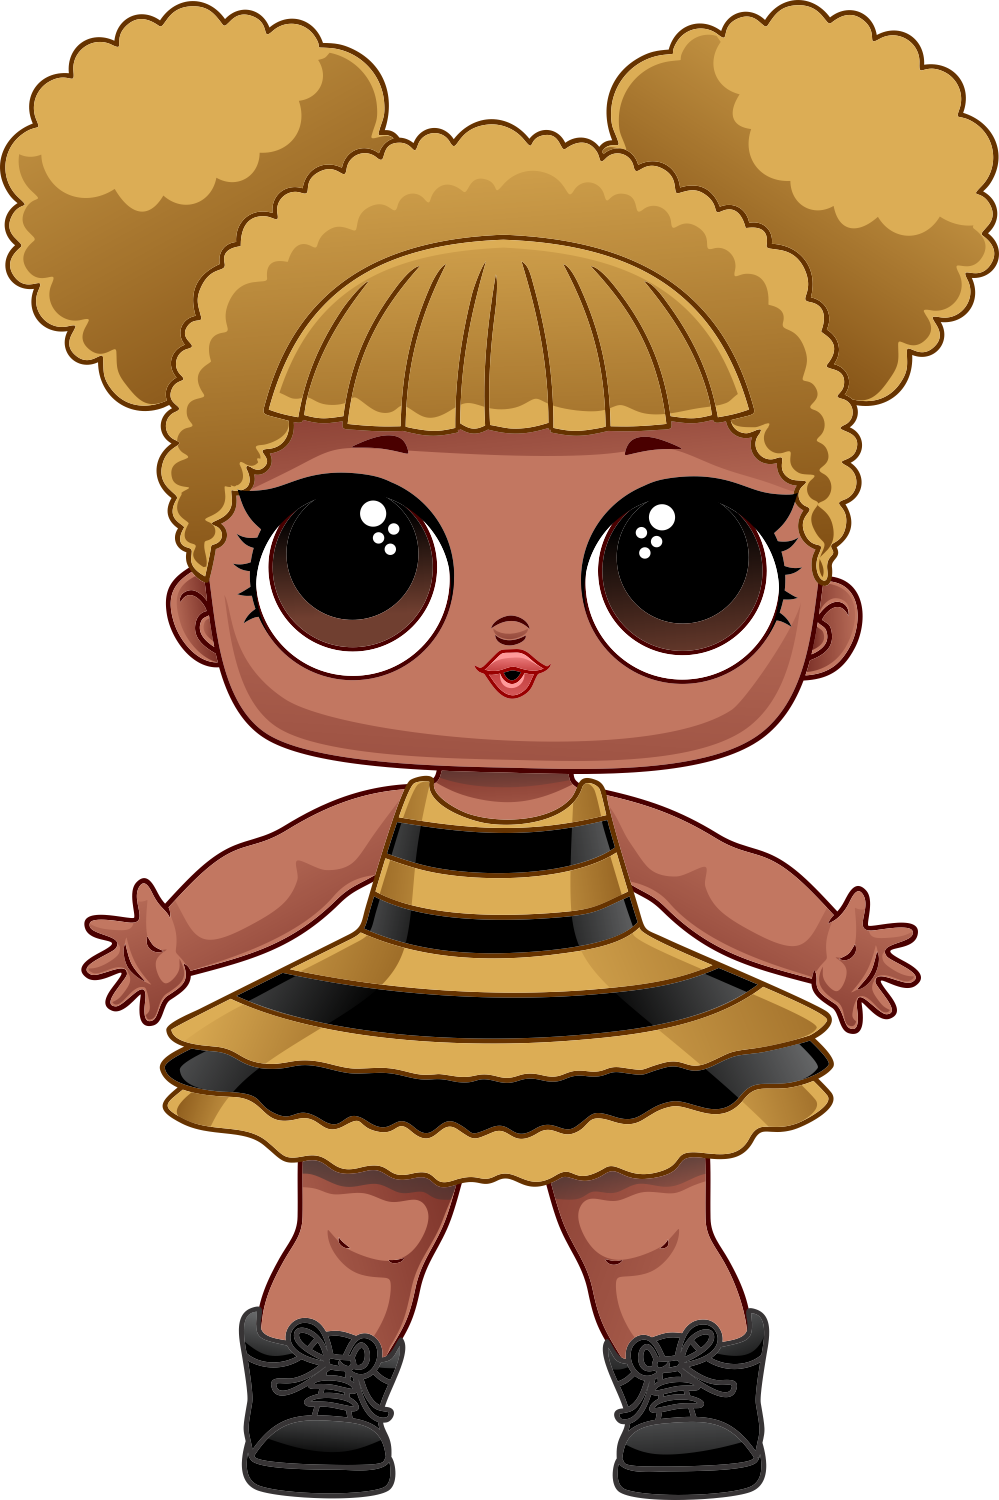 100 Lol Surprise Vectors In Cdr Png And Svg Lol Dolls Cute Cartoon Drawings Lol Doll Cake